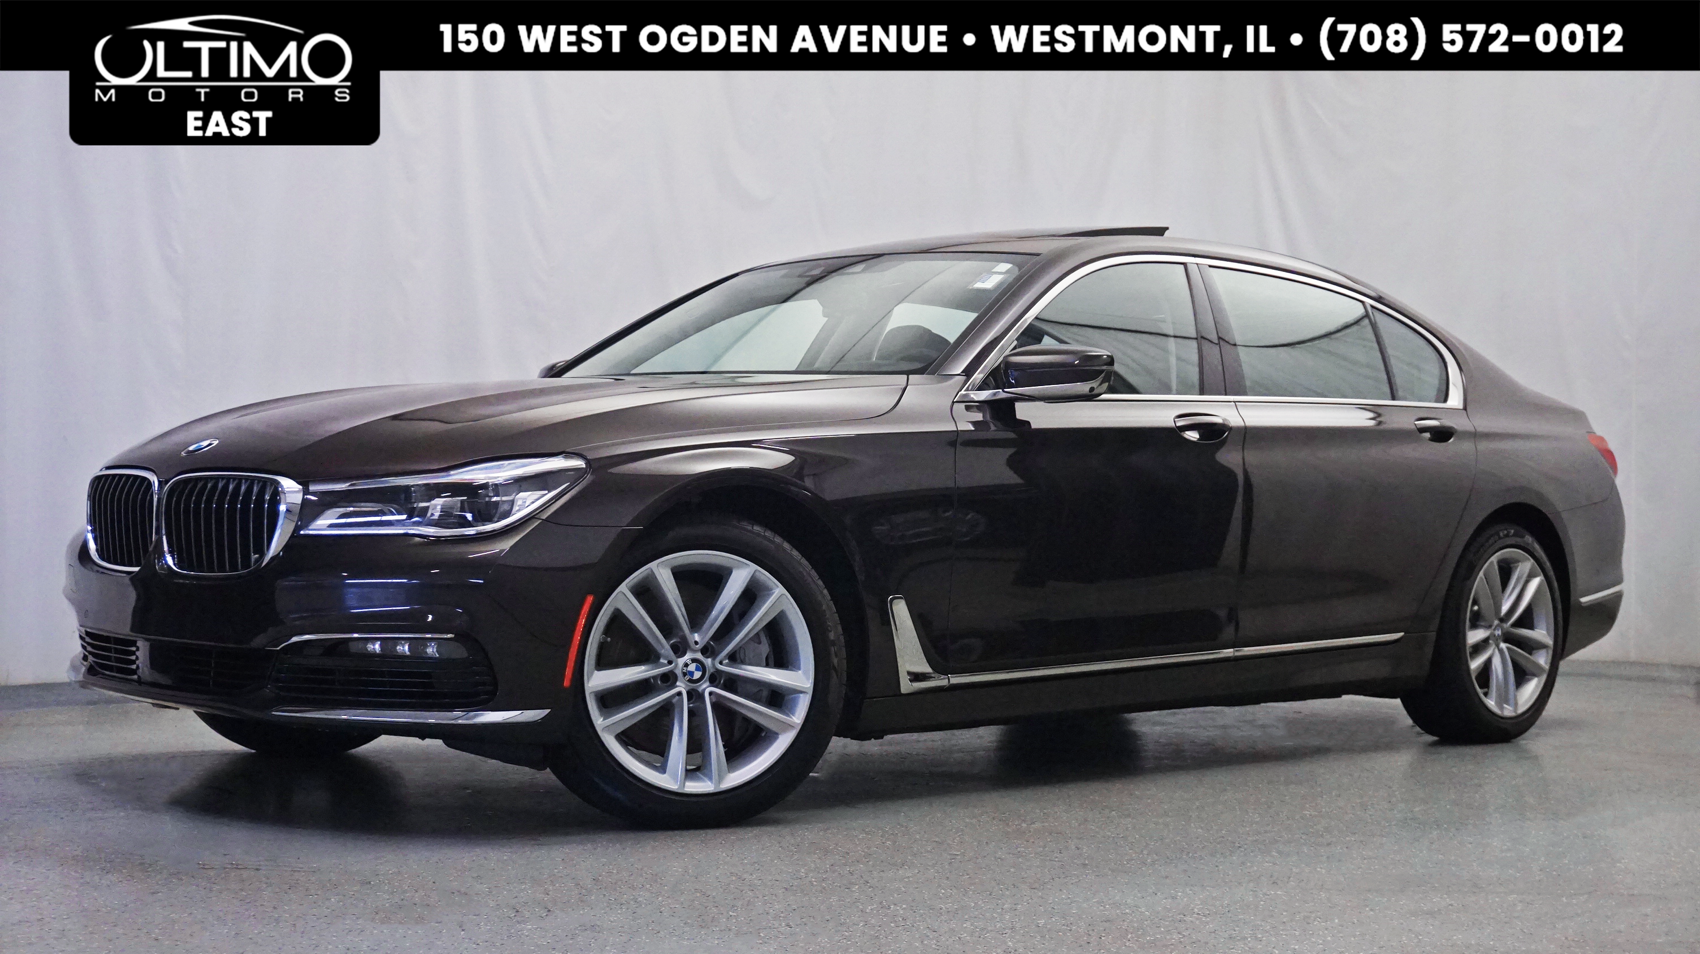 pre-owned 2017 bmw 7 series 750i xdrive executive pkg, driver